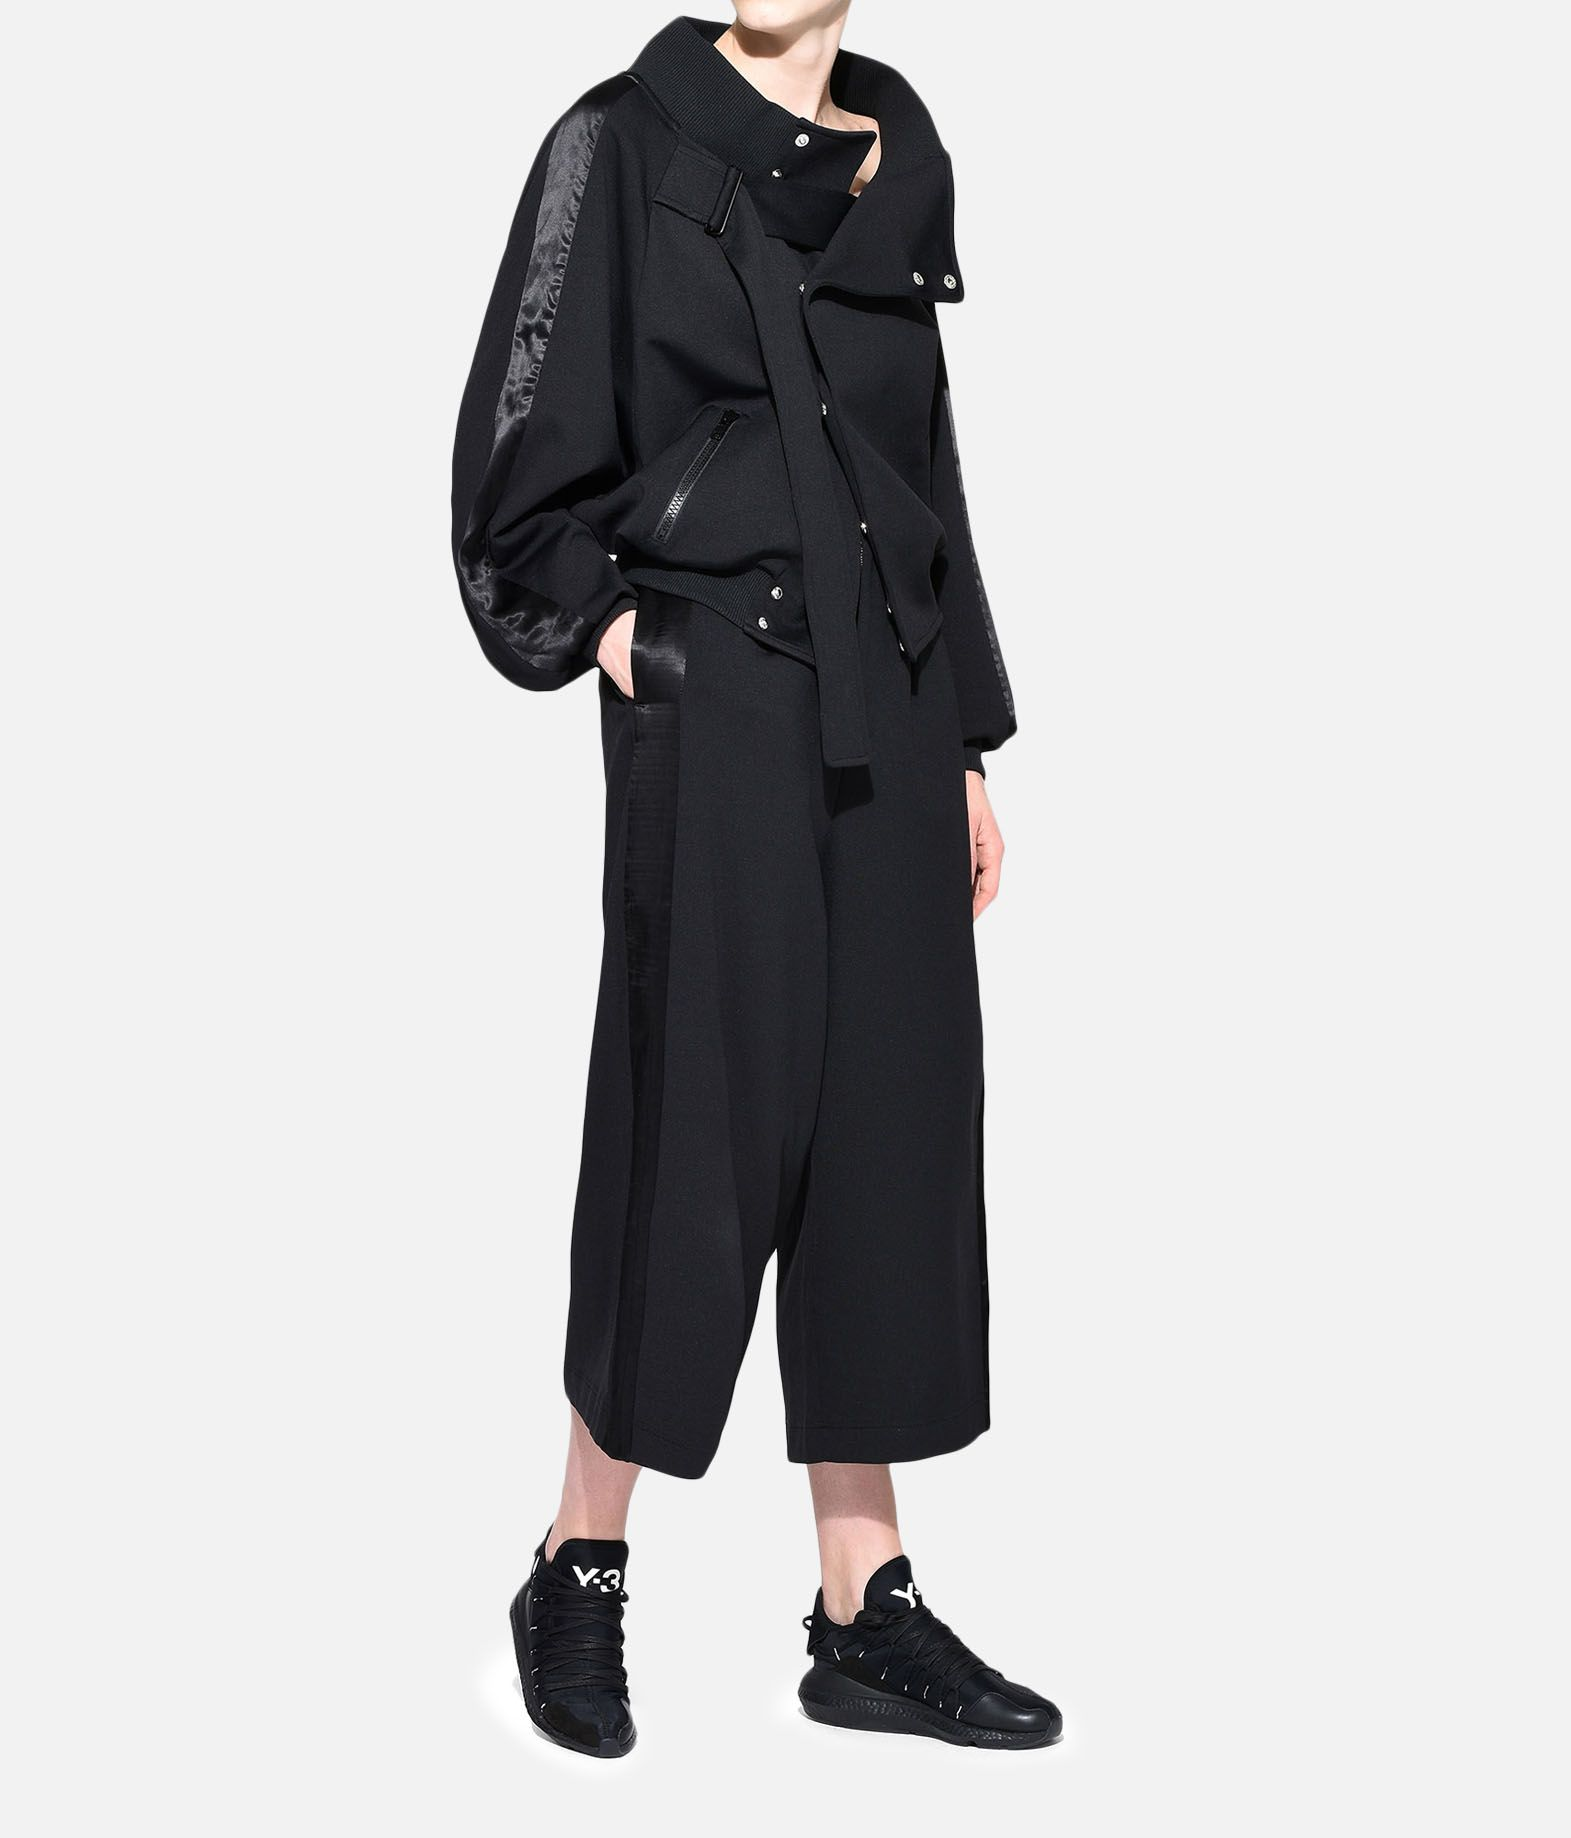 Y-3 Y-3 Matte Track Pants Track pant Woman a